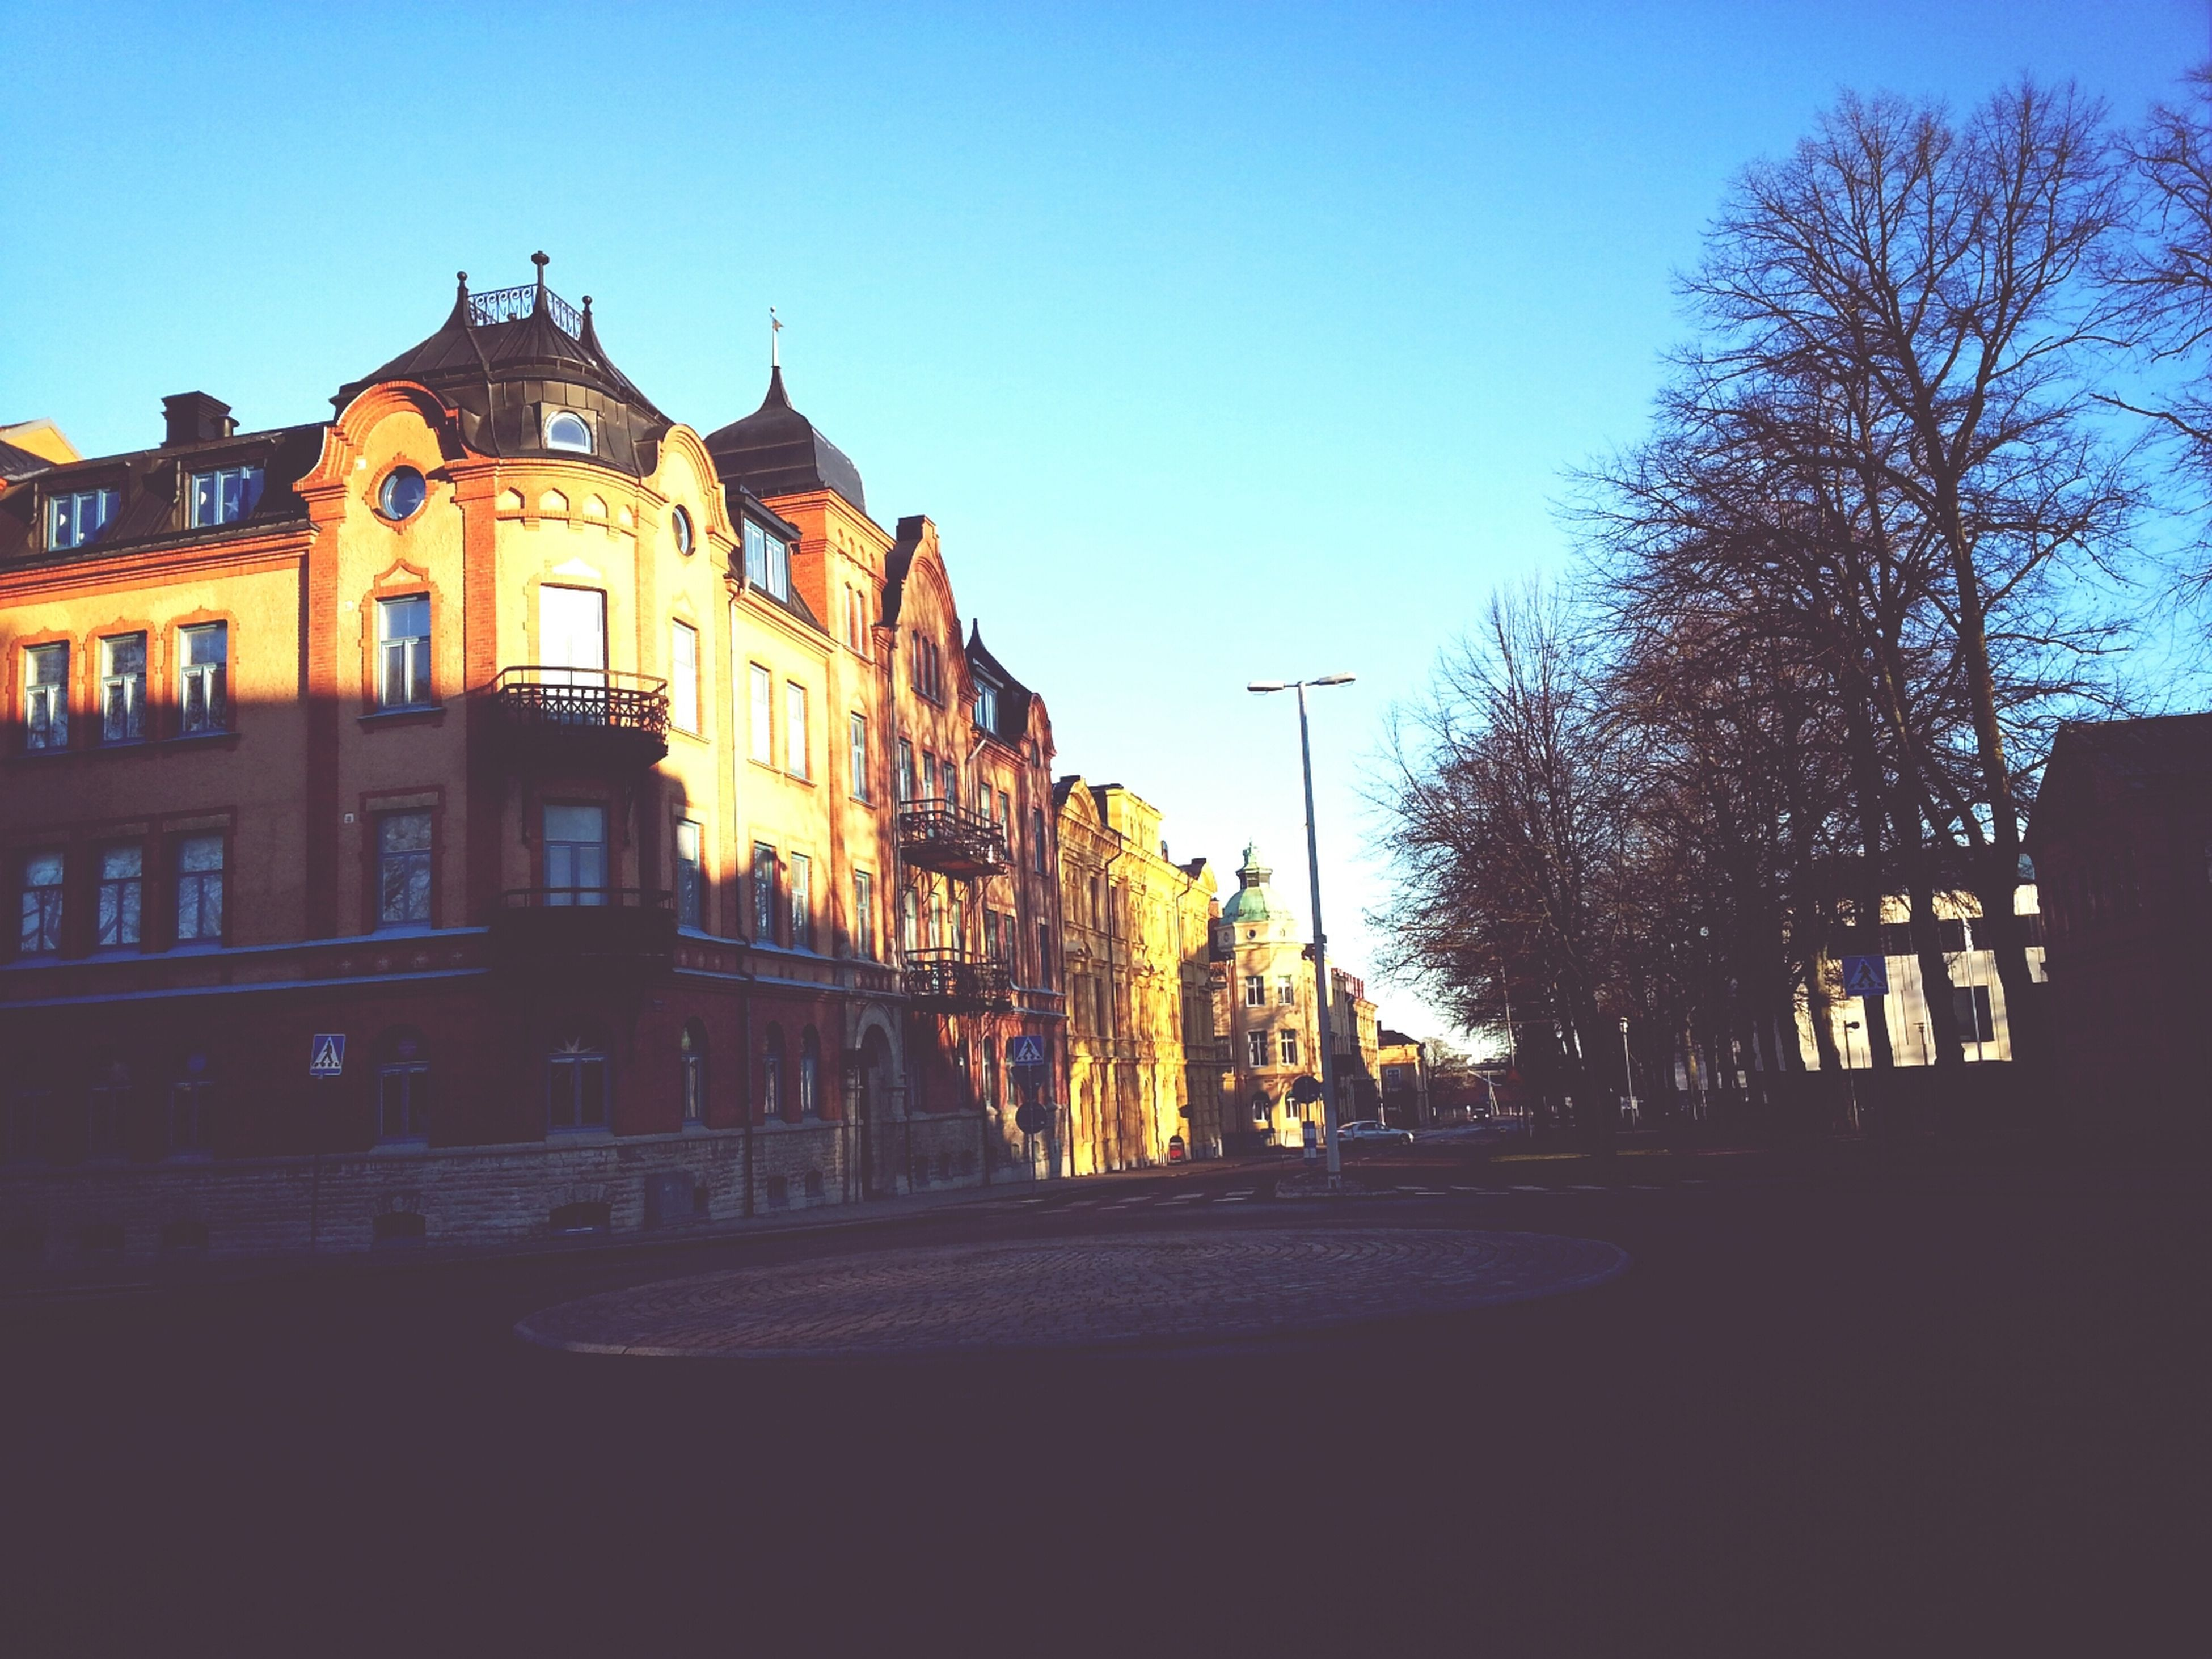 building exterior, architecture, built structure, clear sky, illuminated, blue, tree, copy space, city, dusk, sky, building, residential structure, street light, residential building, house, outdoors, sunset, night, street